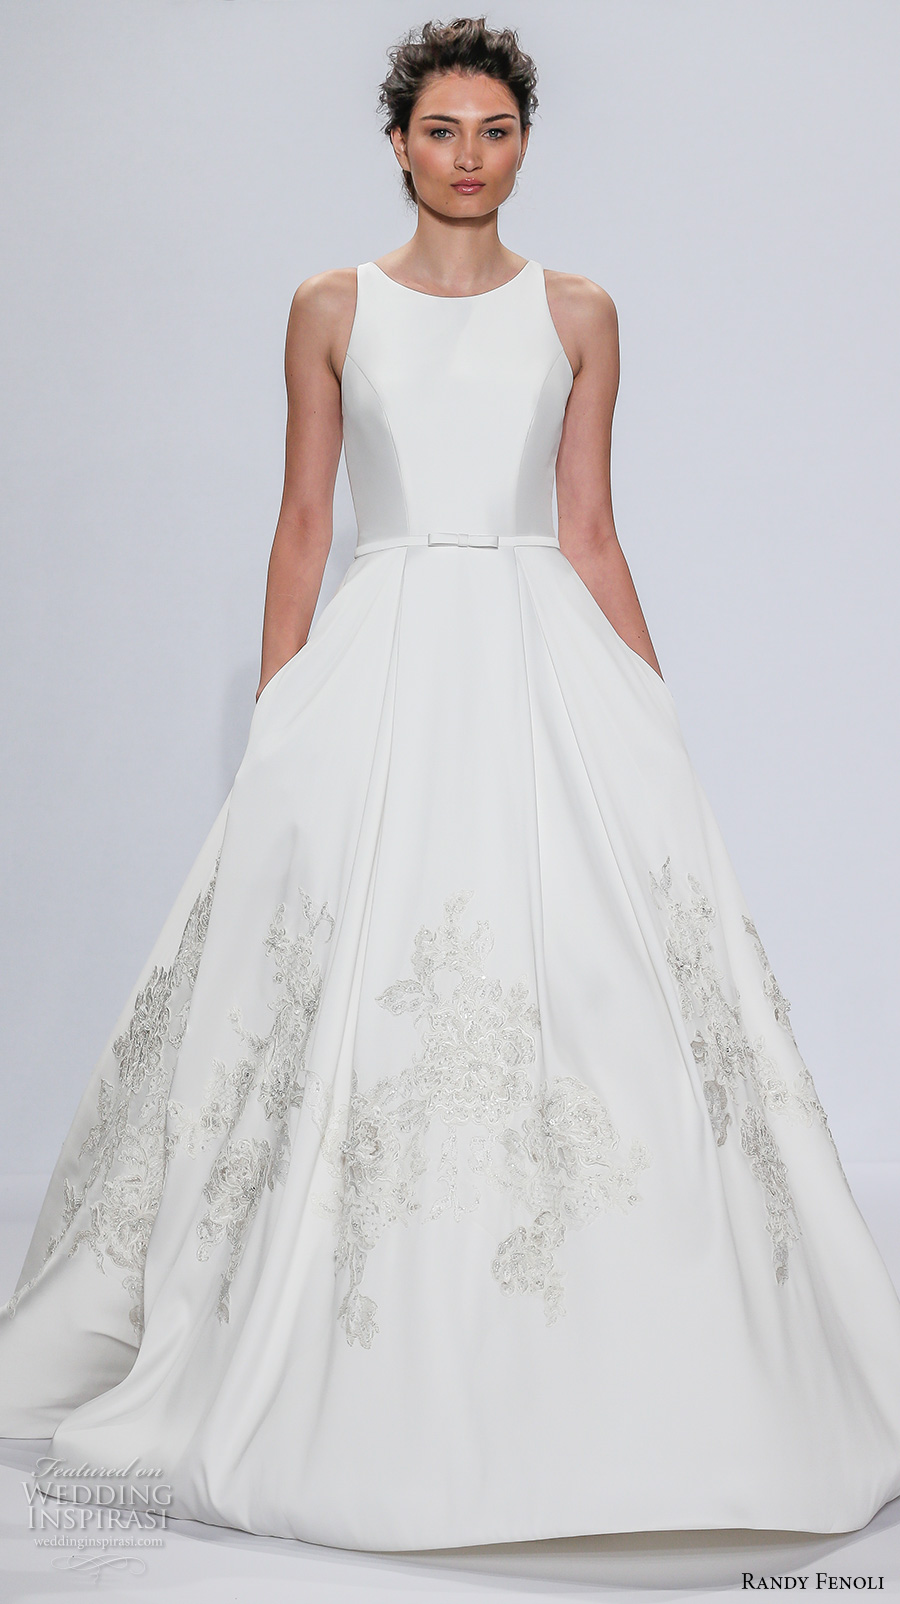 randy fenoli spring 2018 bridal sleeveless jewel neck simple clean embellished hem elegant a  line wedding dress with pockets covered back sweep train (06) mv